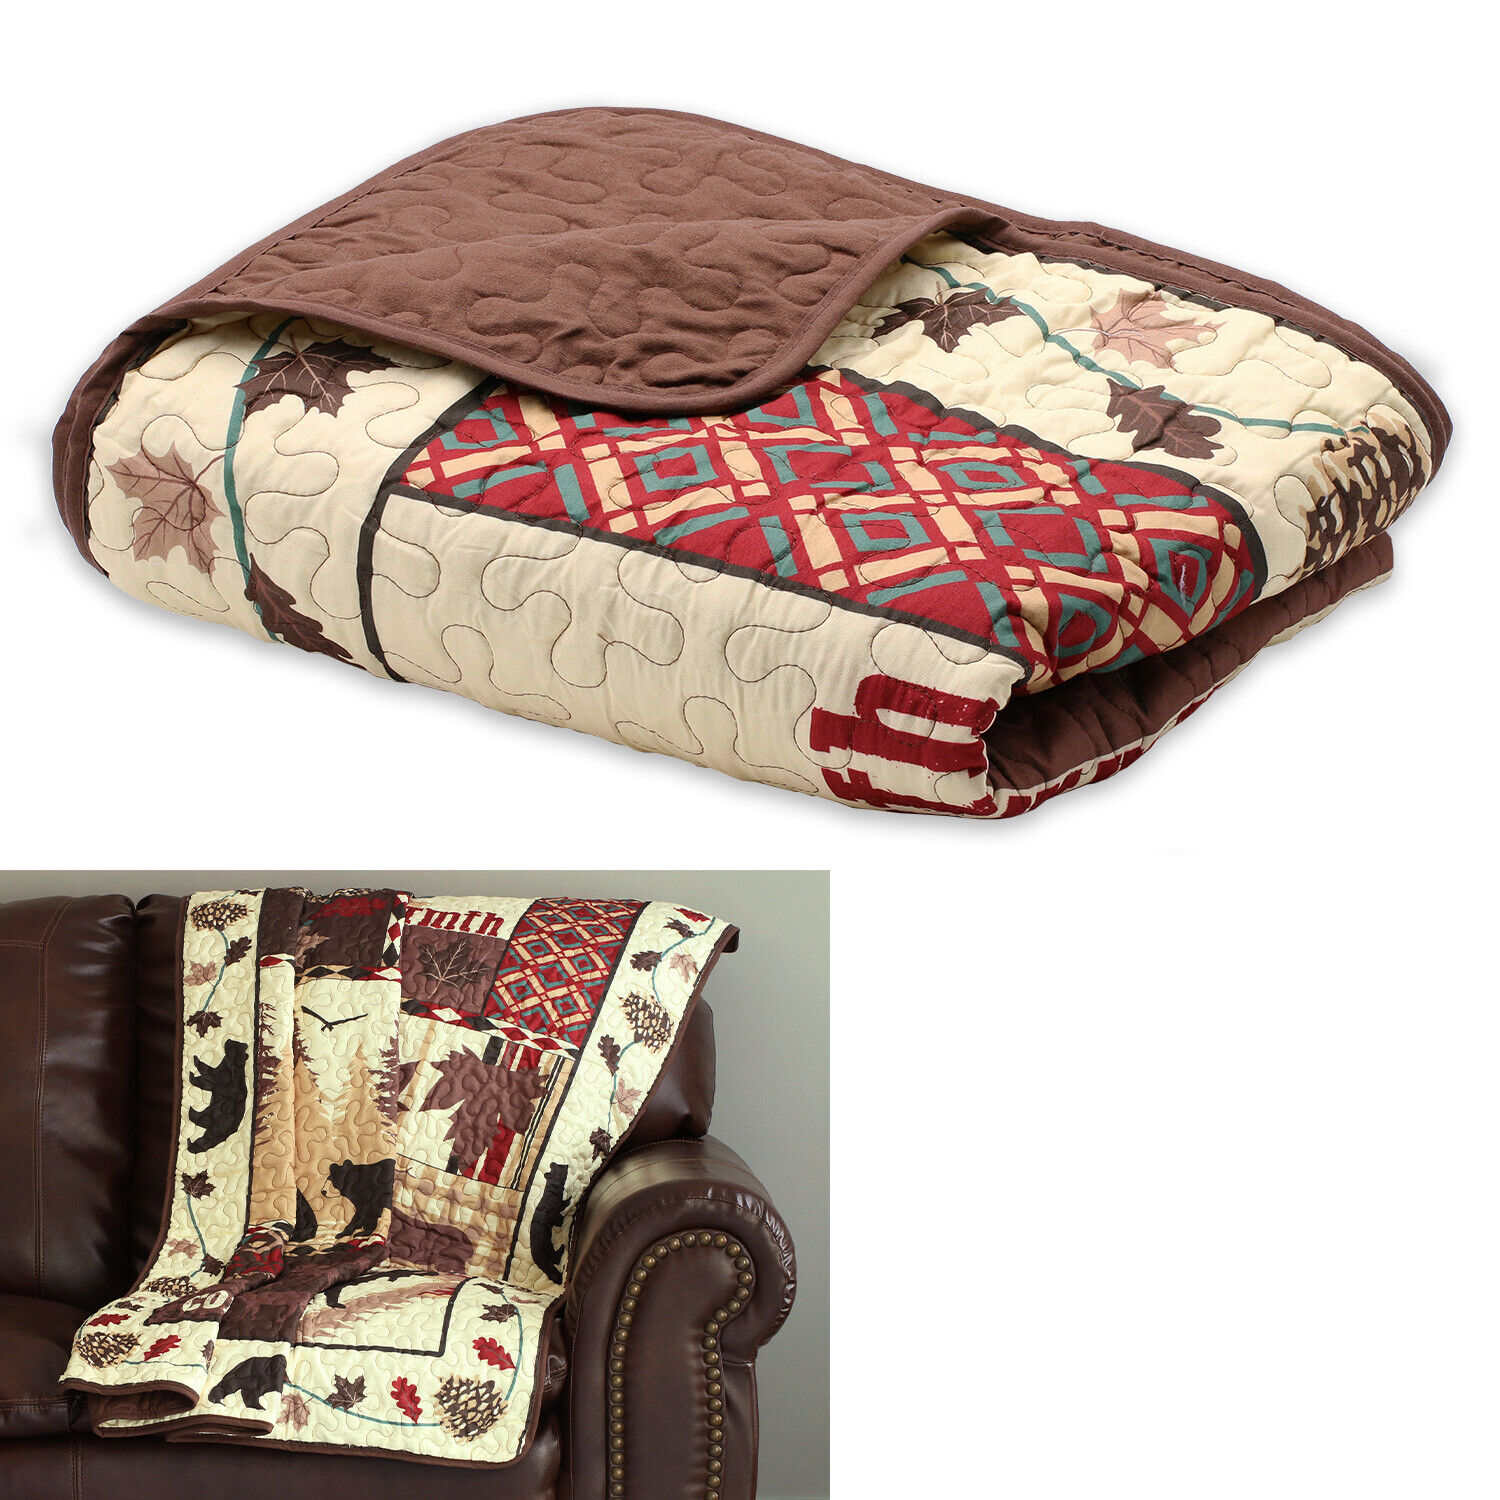 Rustic Bear Cabin Lodge Reversible Quilted Throw Blanket 50î x 60î, Brown Red Bedding